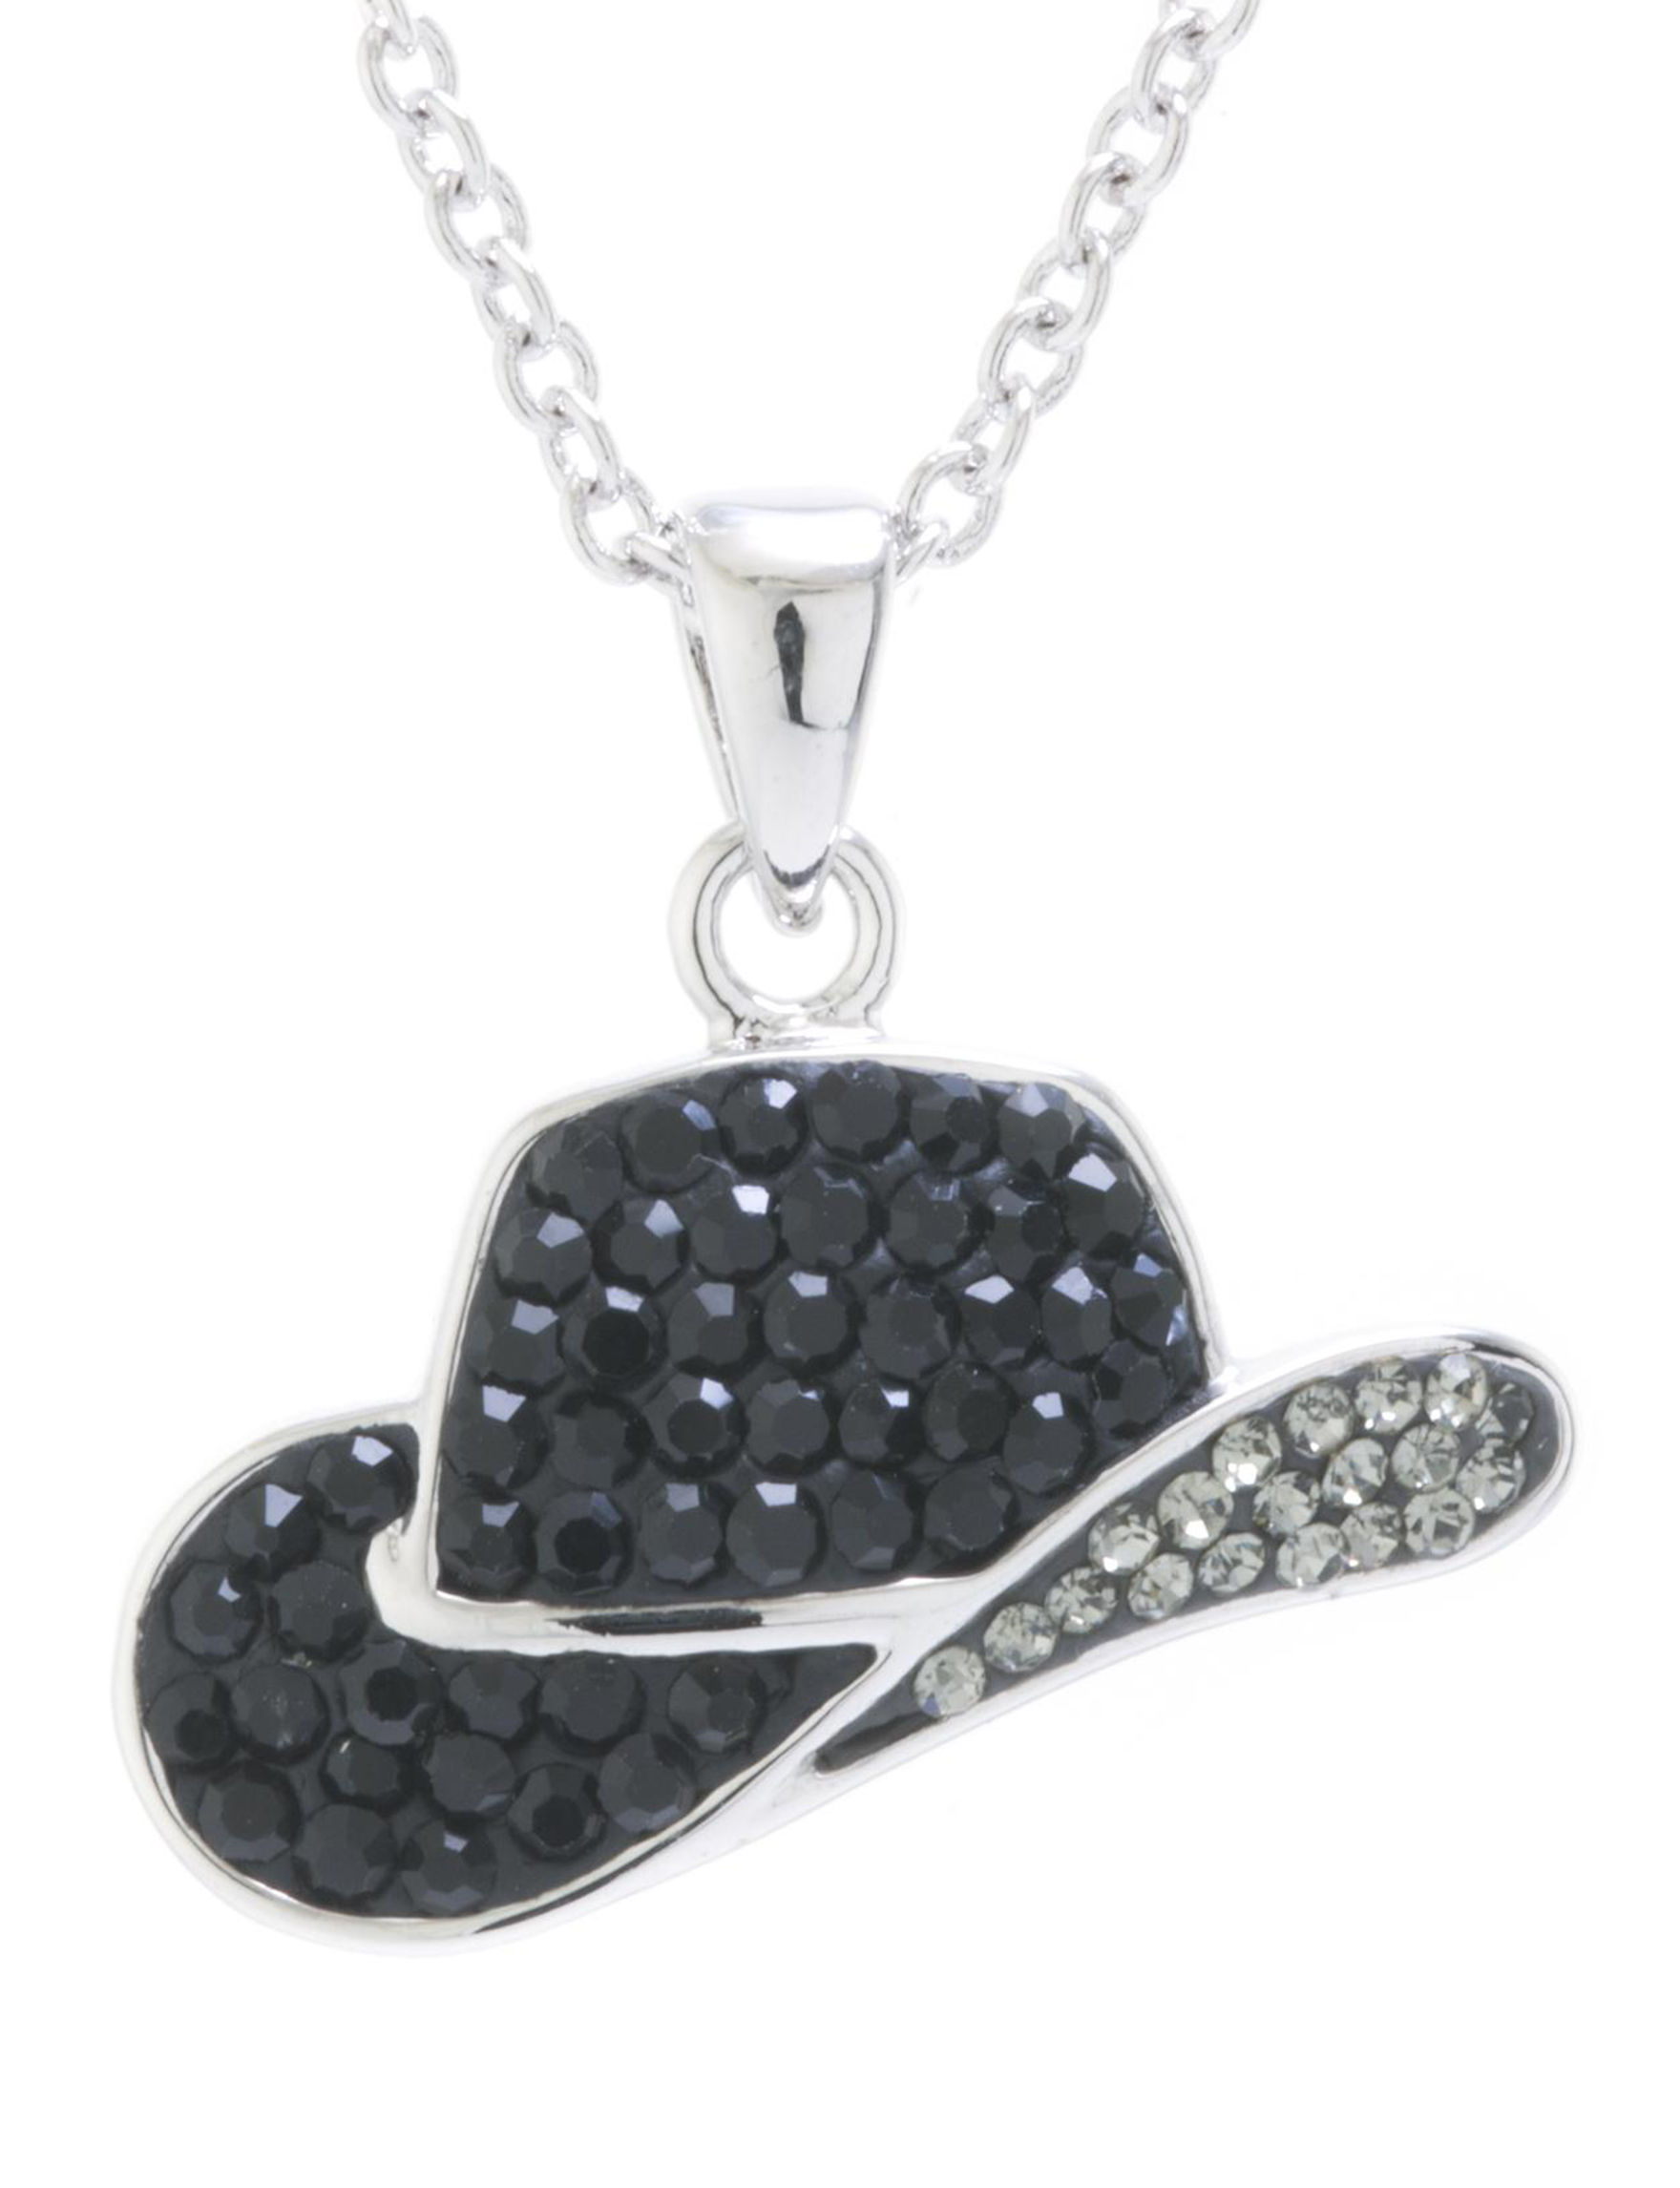 Athra Silver Necklaces & Pendants Fine Jewelry